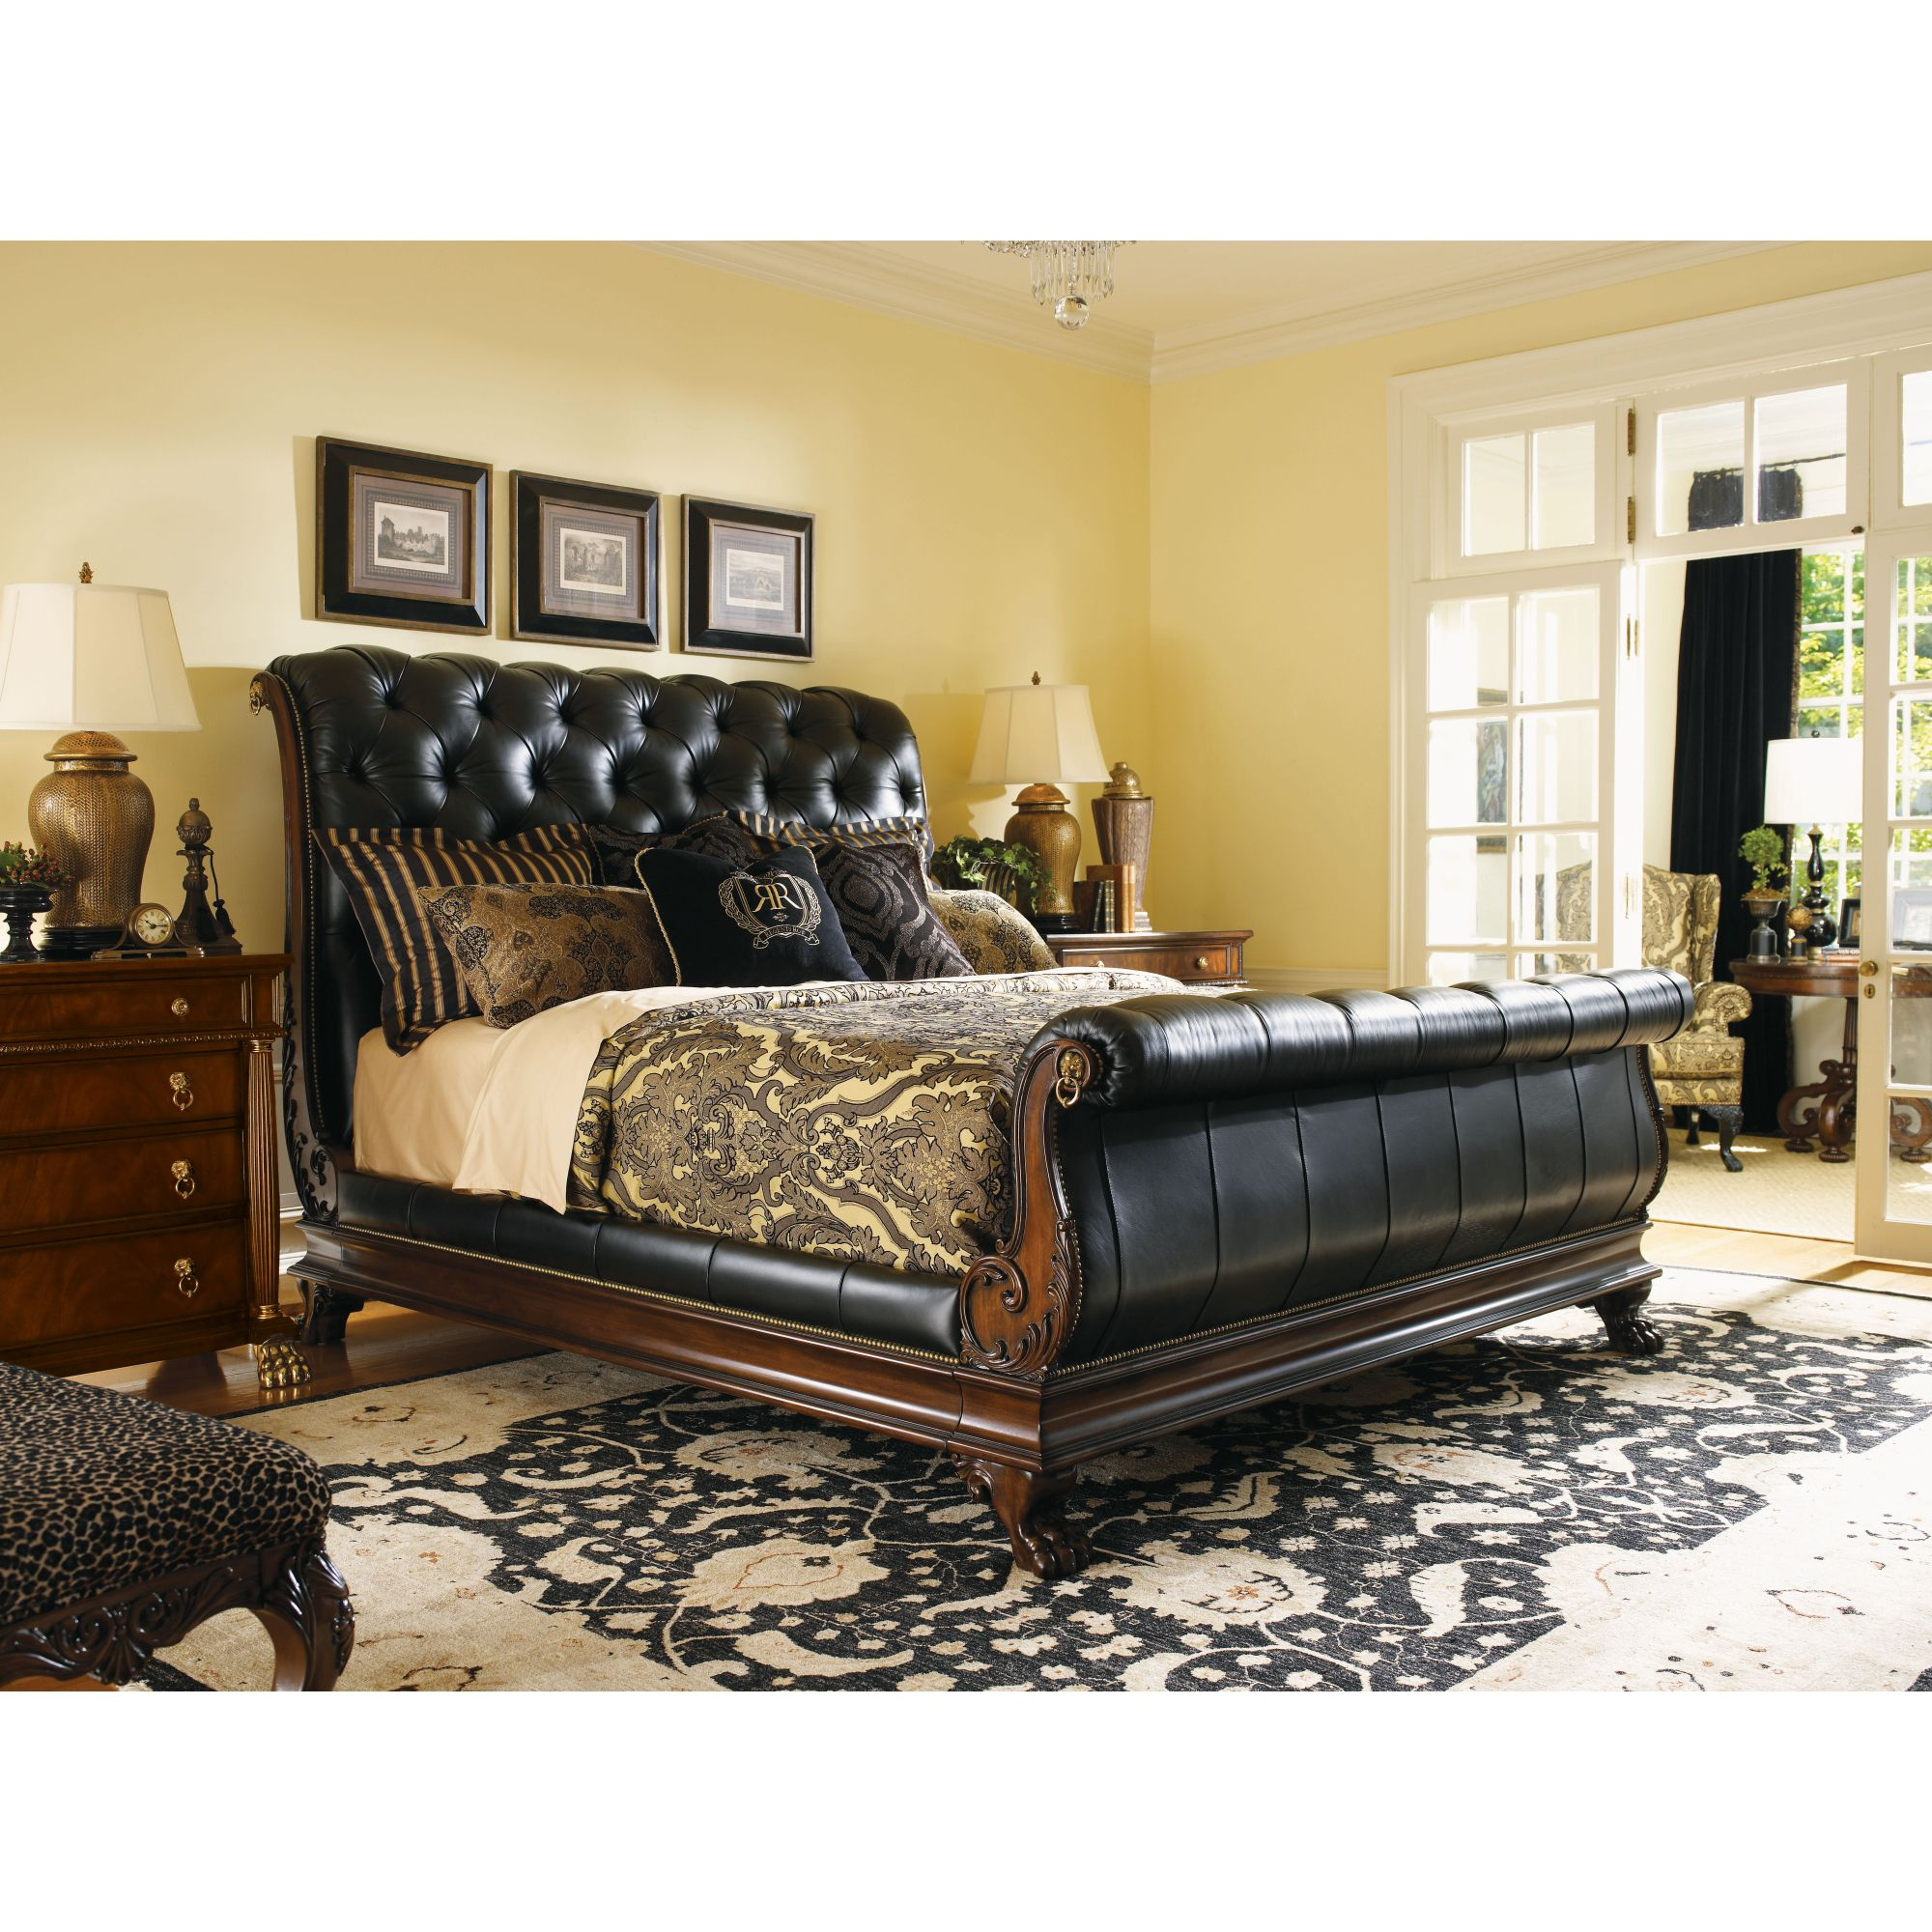 Lexington Regents Row Coventry Leather Sleigh Bedroom Set In